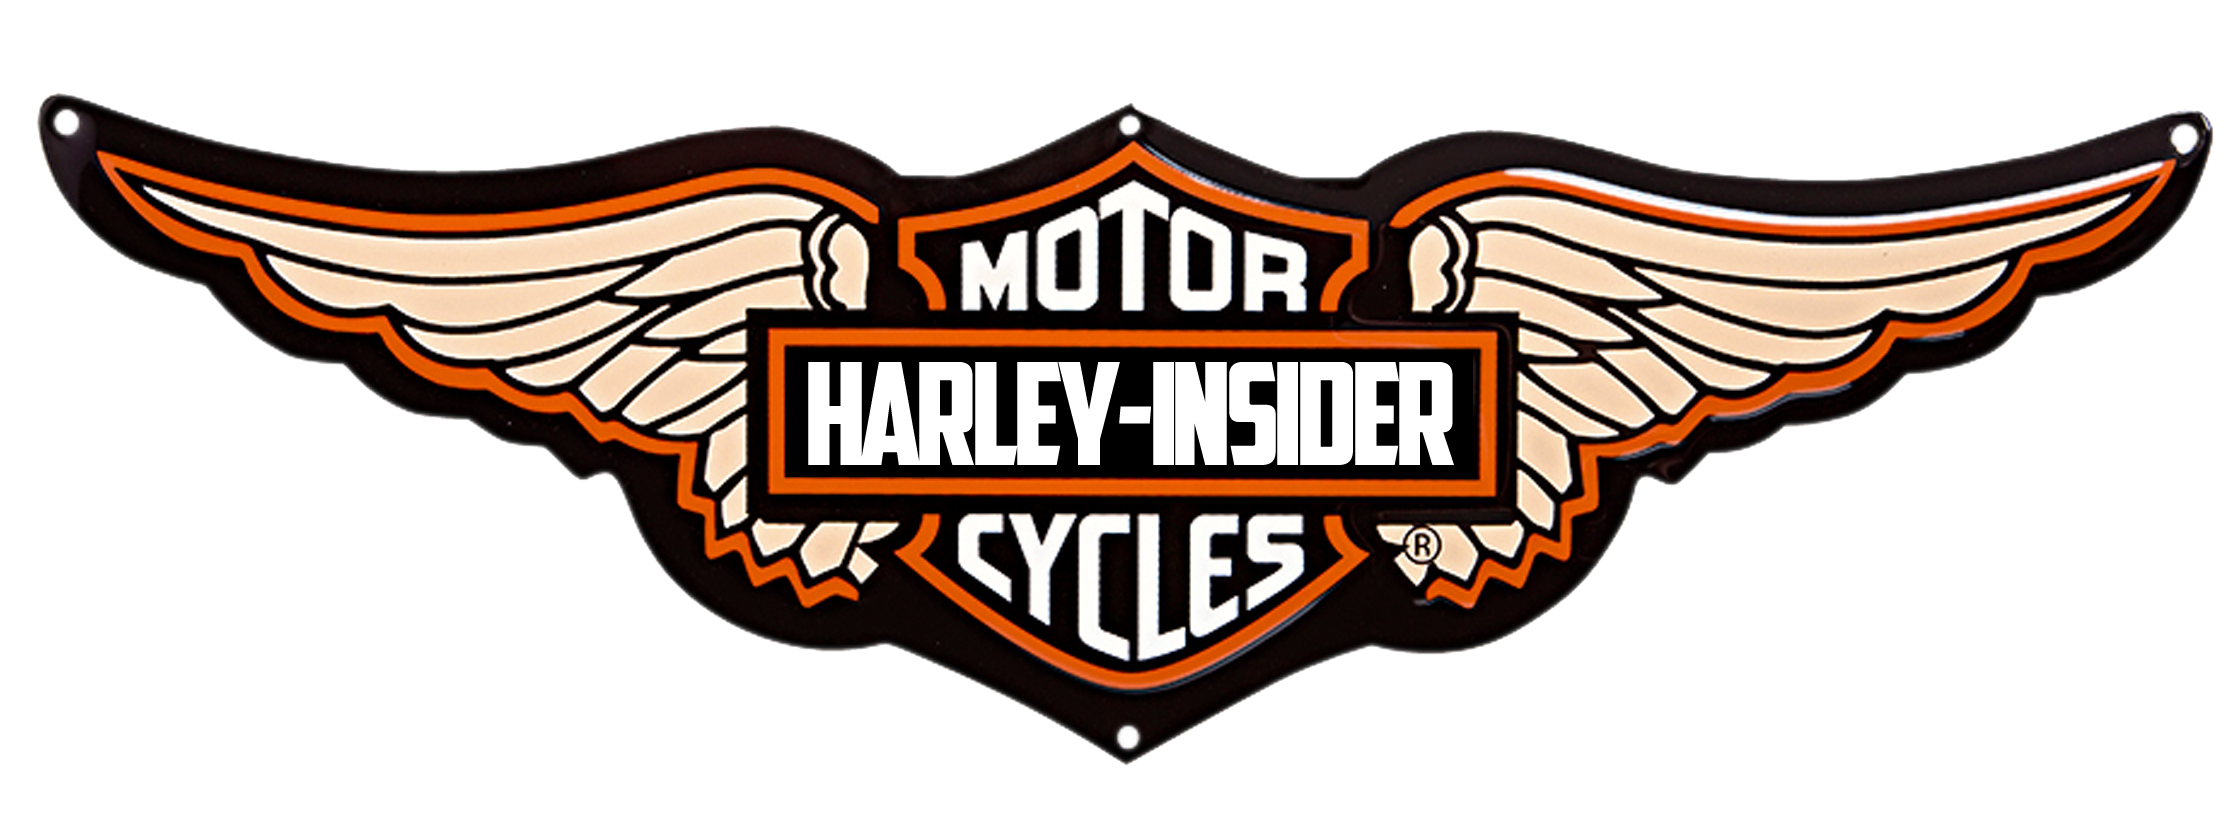 Harley davidson wings clipart vector transparent Free Harley-Davidson Logo Cliparts, Download Free Clip Art, Free ... vector transparent